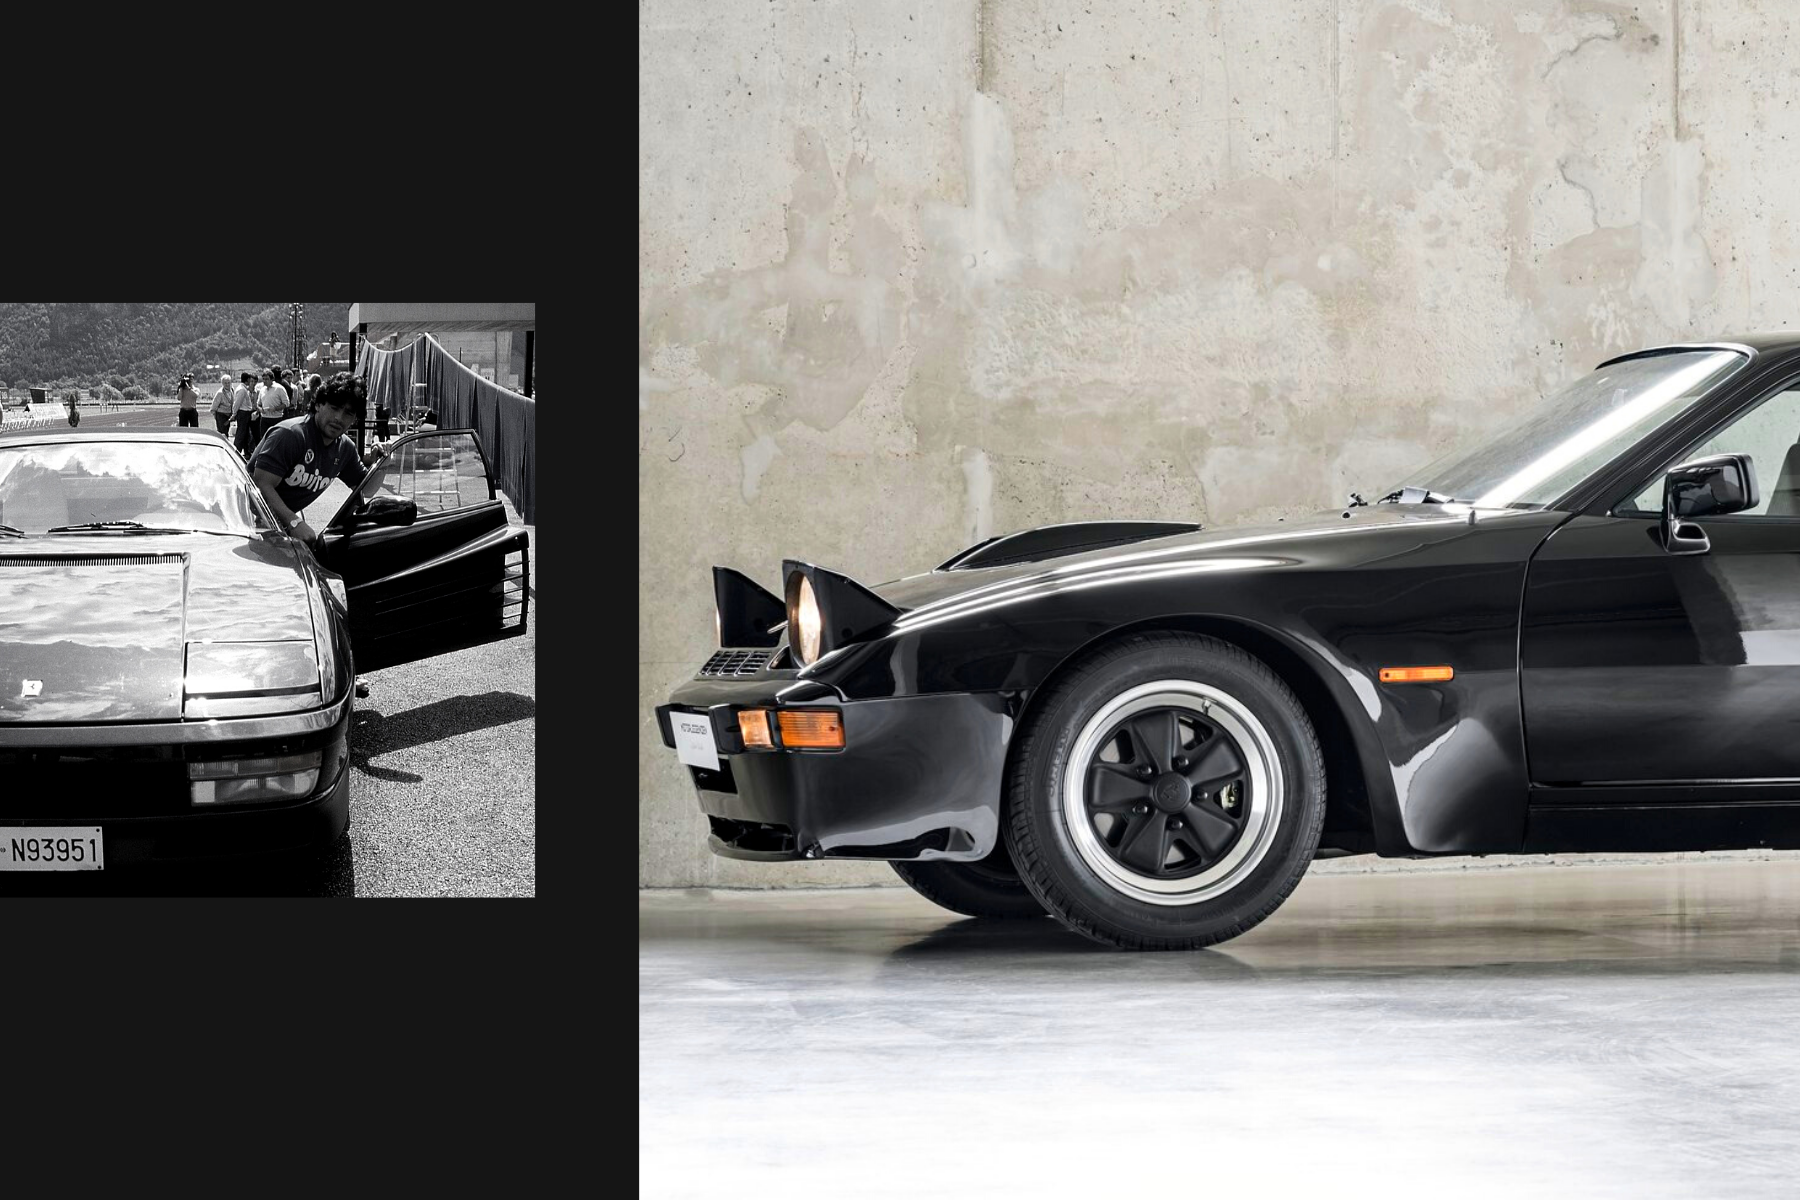 The Top 4 exotic cars from Diego Maradona's collection ()